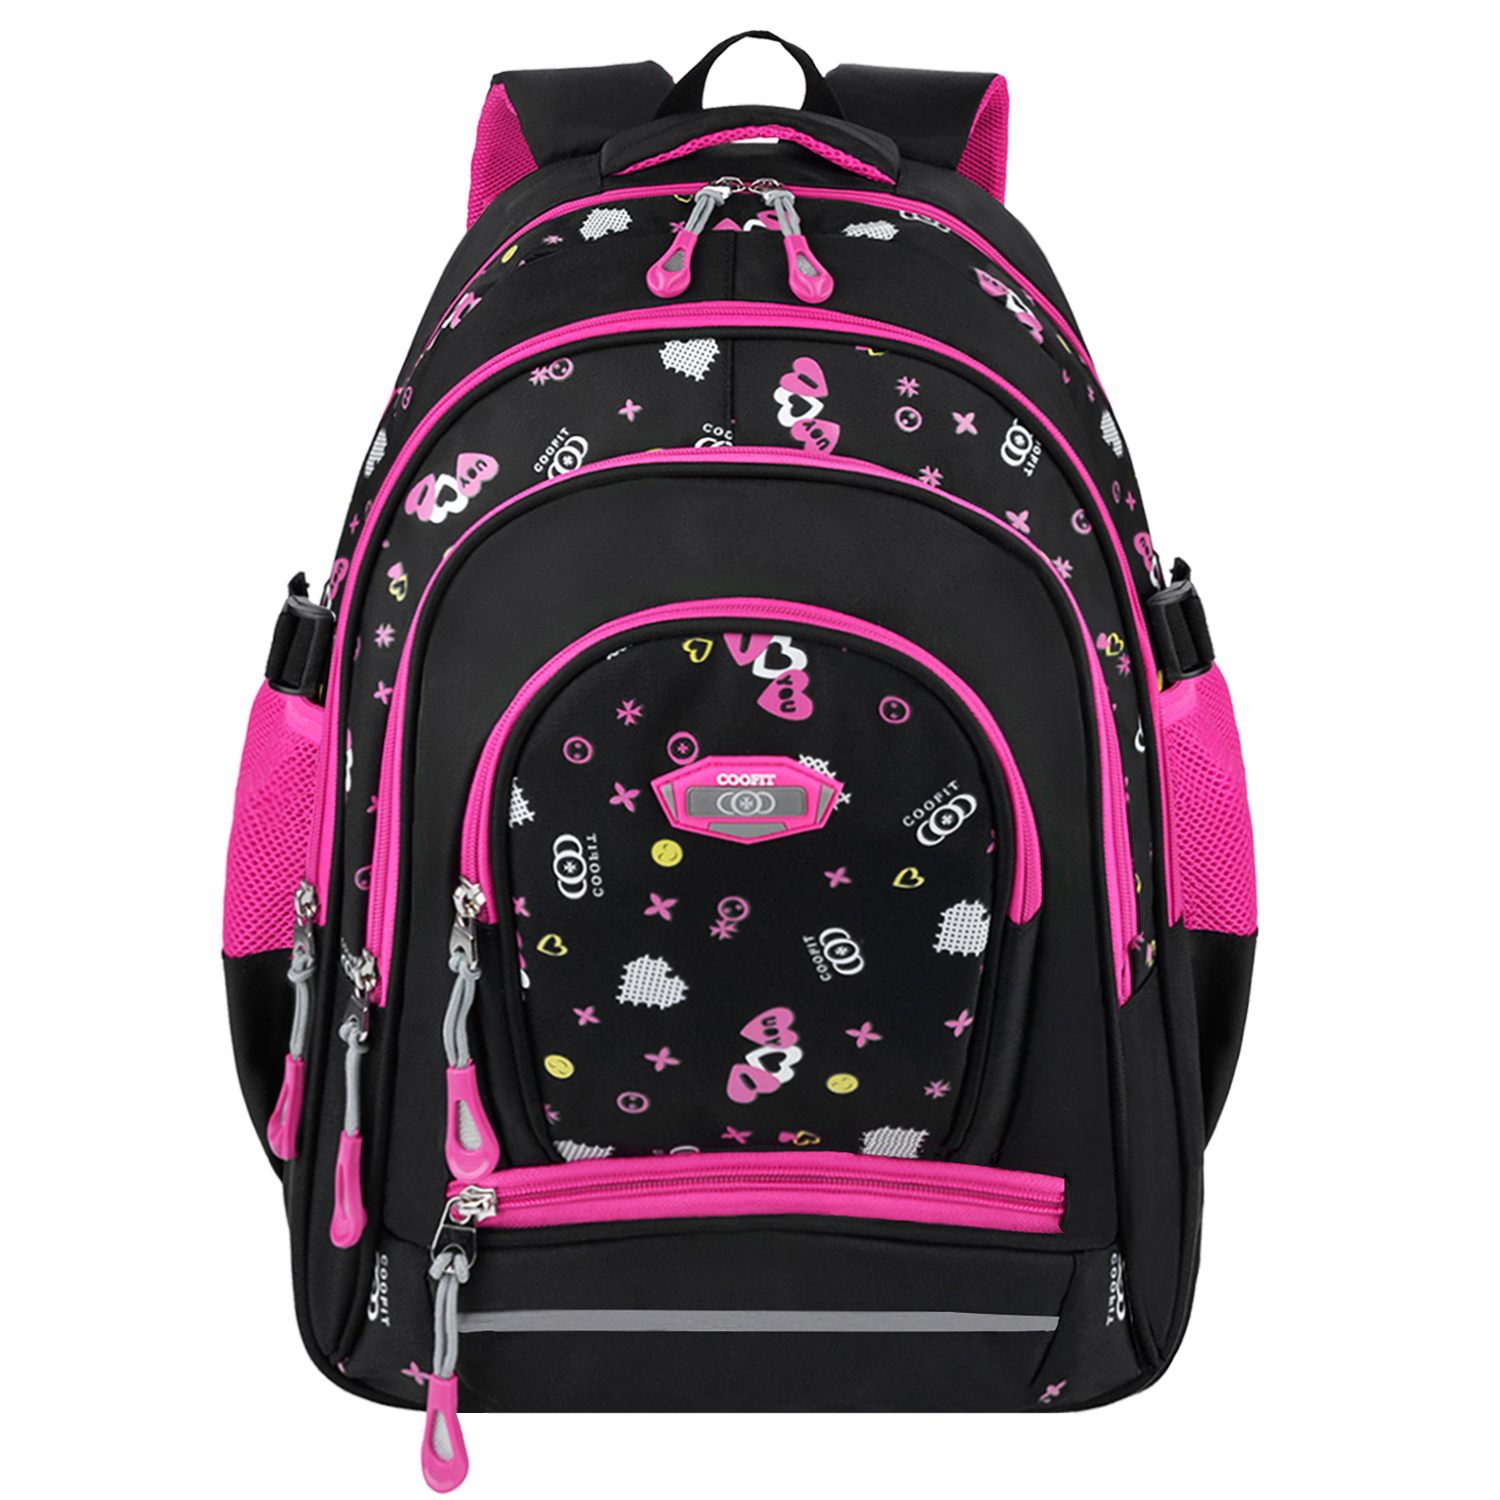 School Backpack, Coofit Large Multi Pocket Printed Student Backpack Travel Rucksack Daypack for Kids Boys Girls